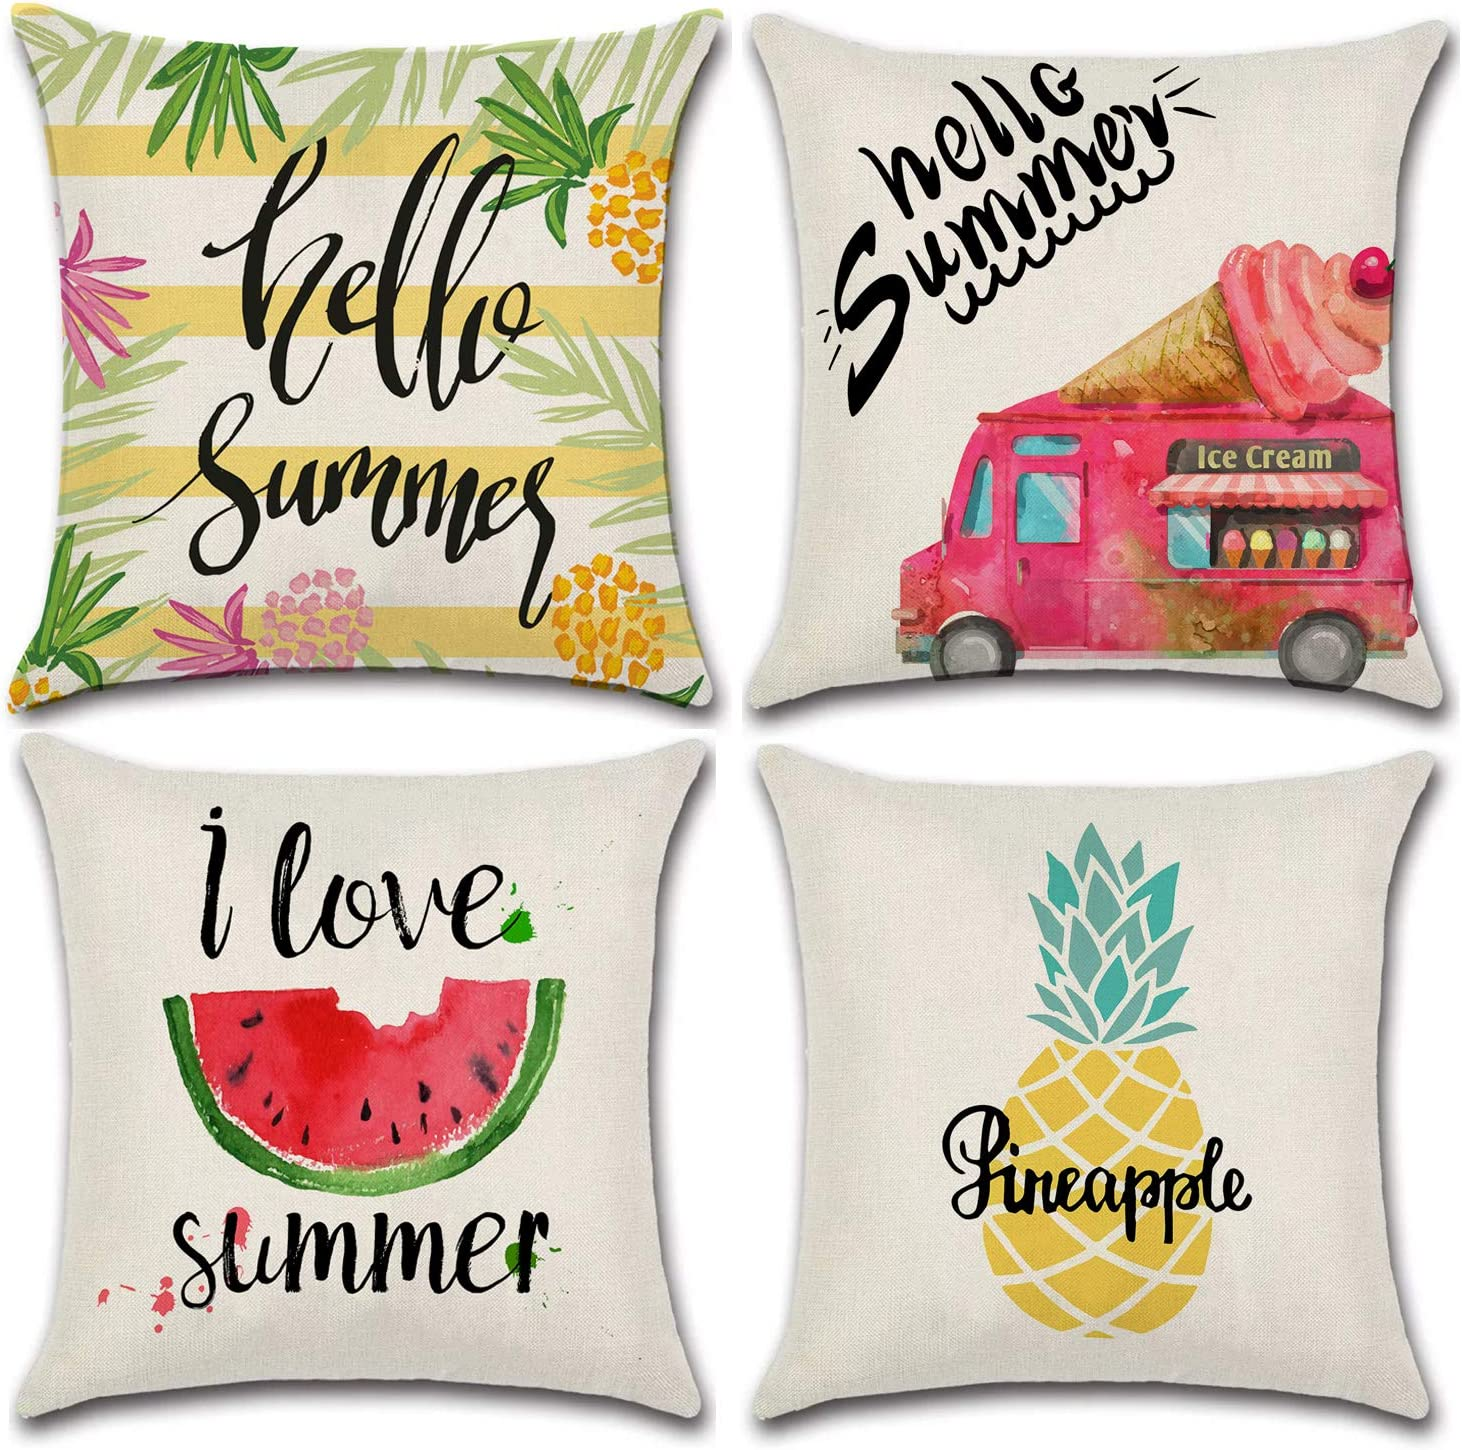 JOJUSIS Spring Theme Flower Bicycle Throw Pillow Covers Cotton Linen Home Decor Decorative Cushion Cases 20 x 20 inch Set of 4